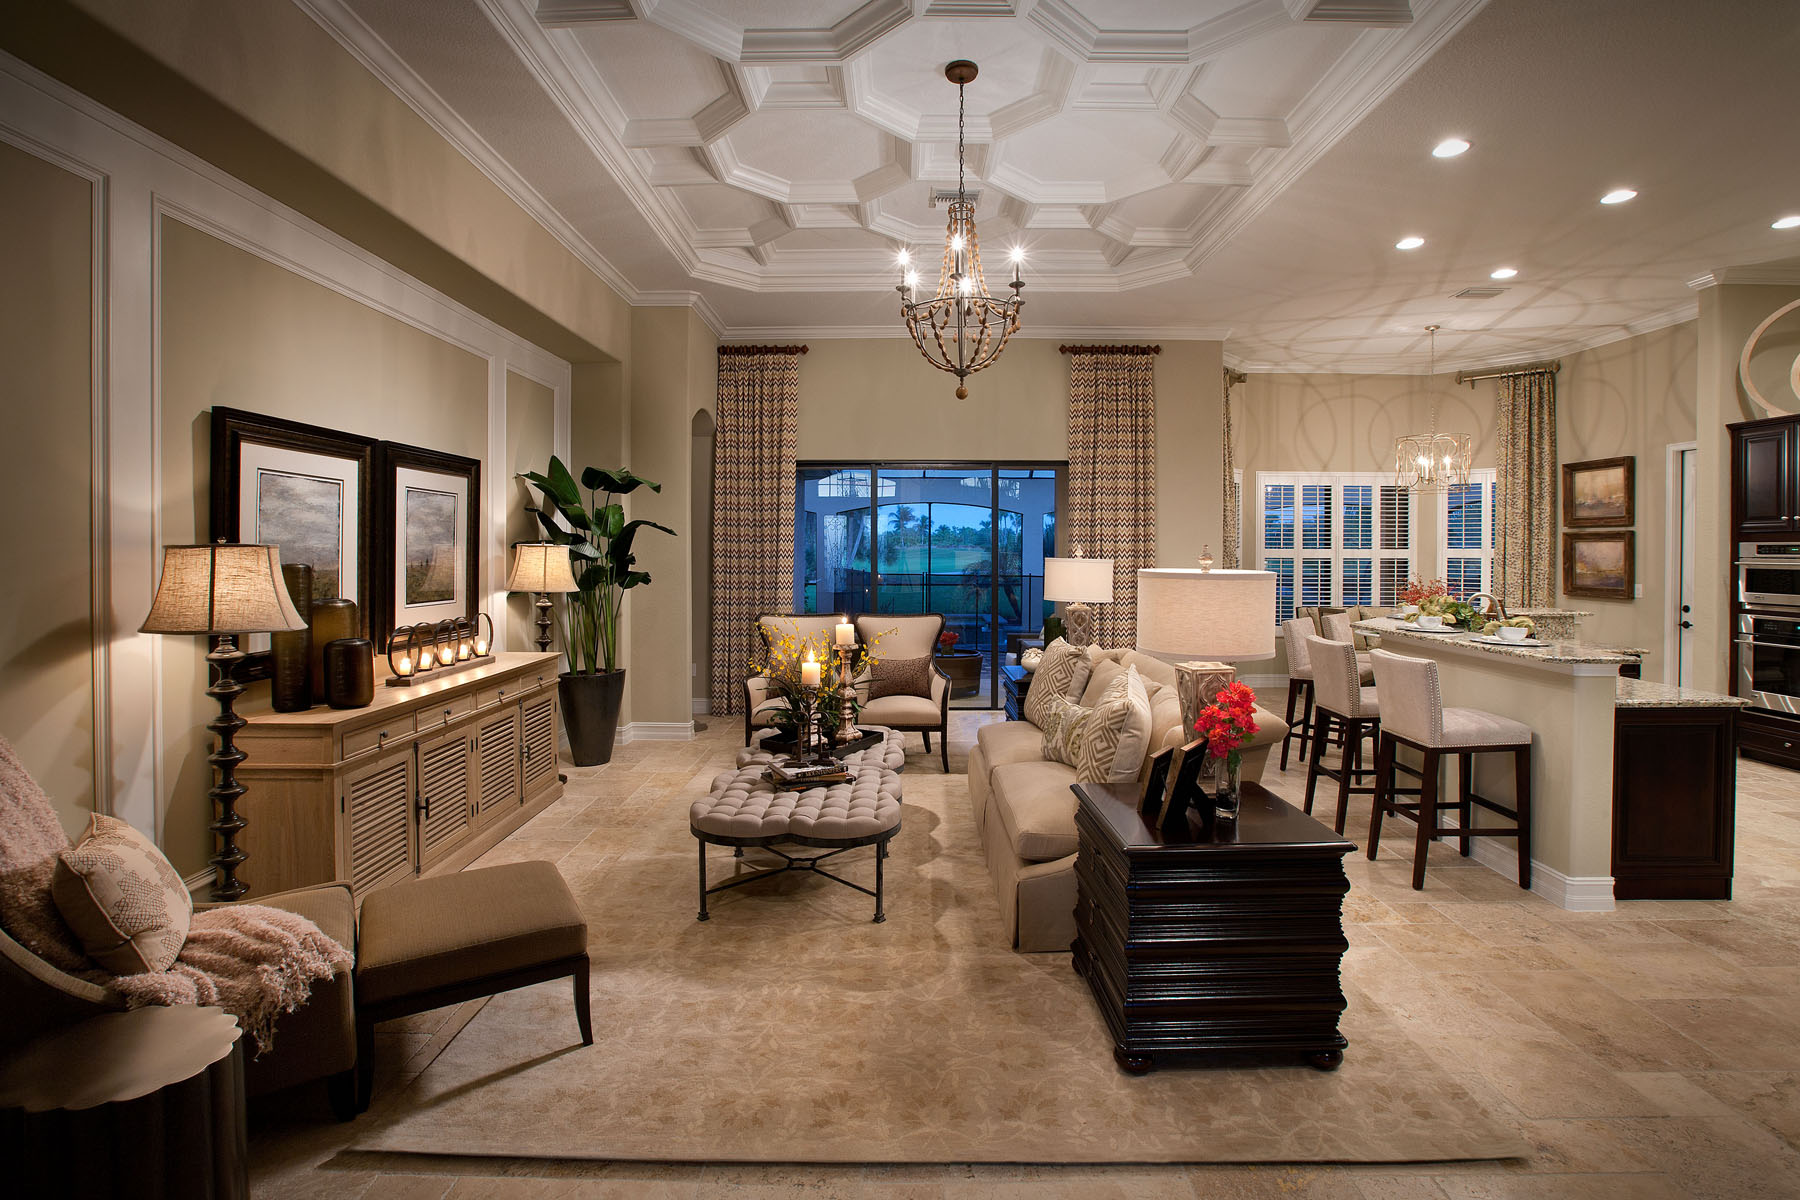 Lennar homes bougainvillea model in runaway bay at fiddler s creek wins cbia award - Home and living ...